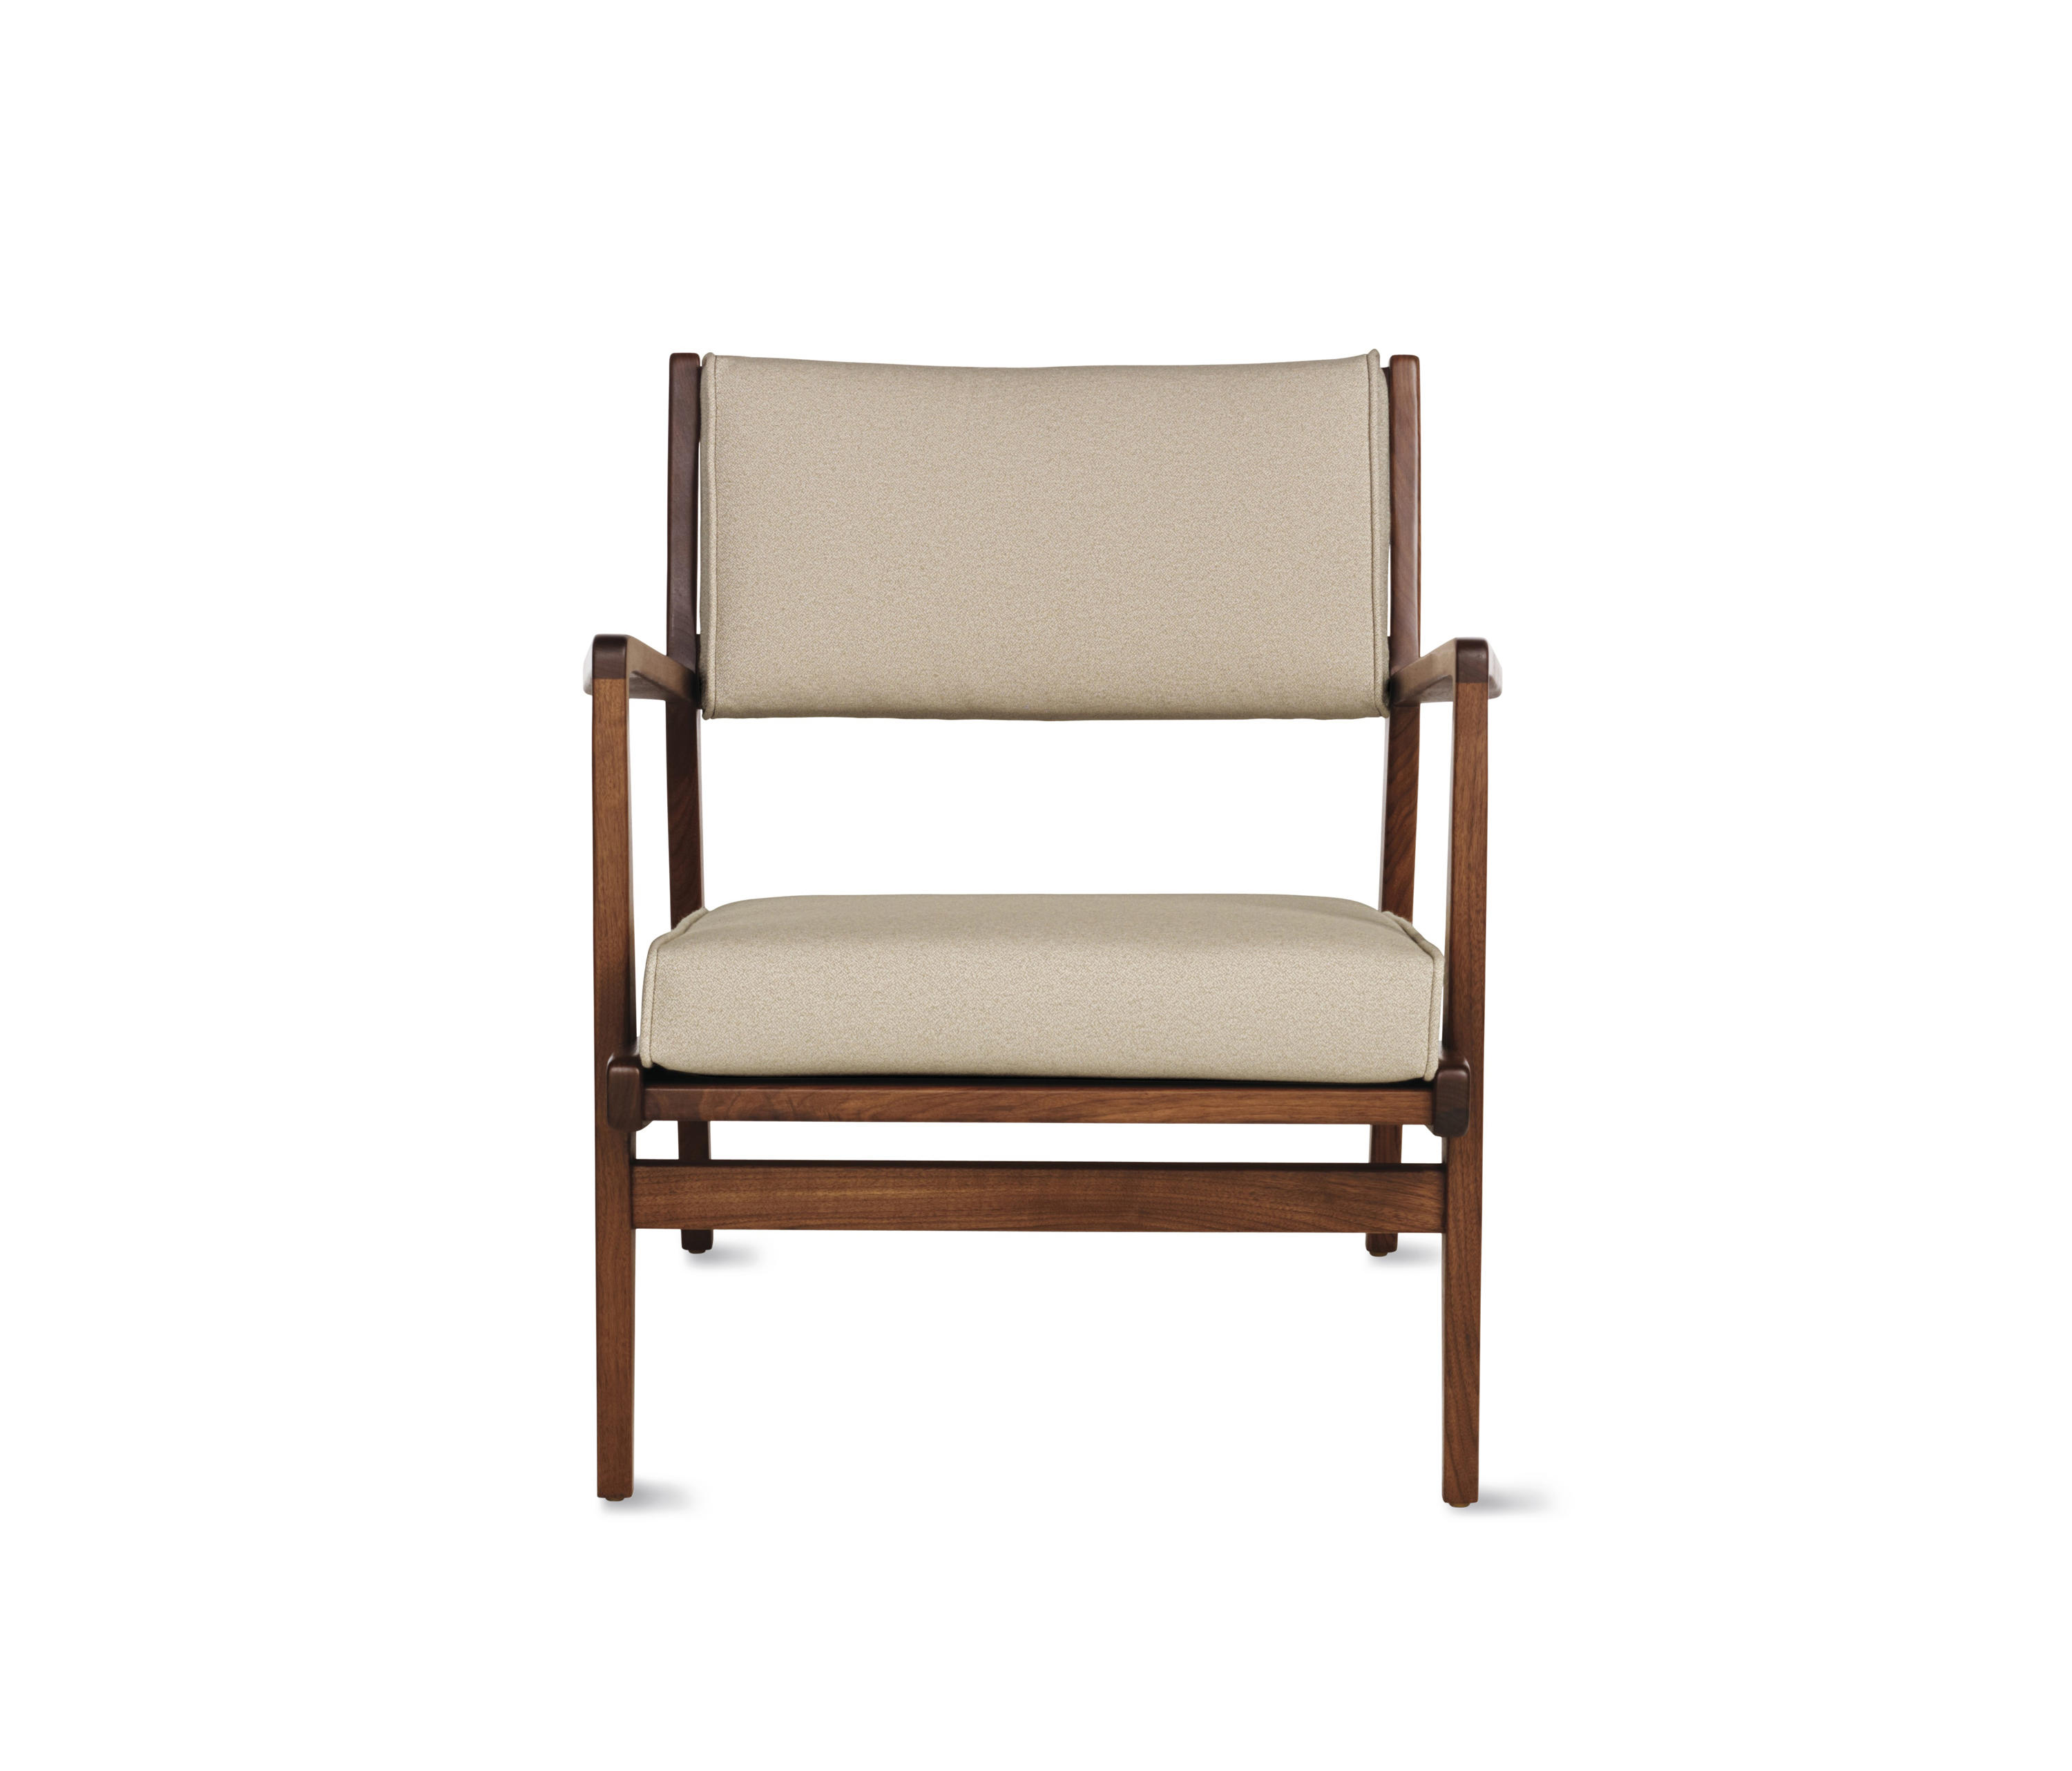 jens chair design within reach swing jhula price armchairs from architonic by